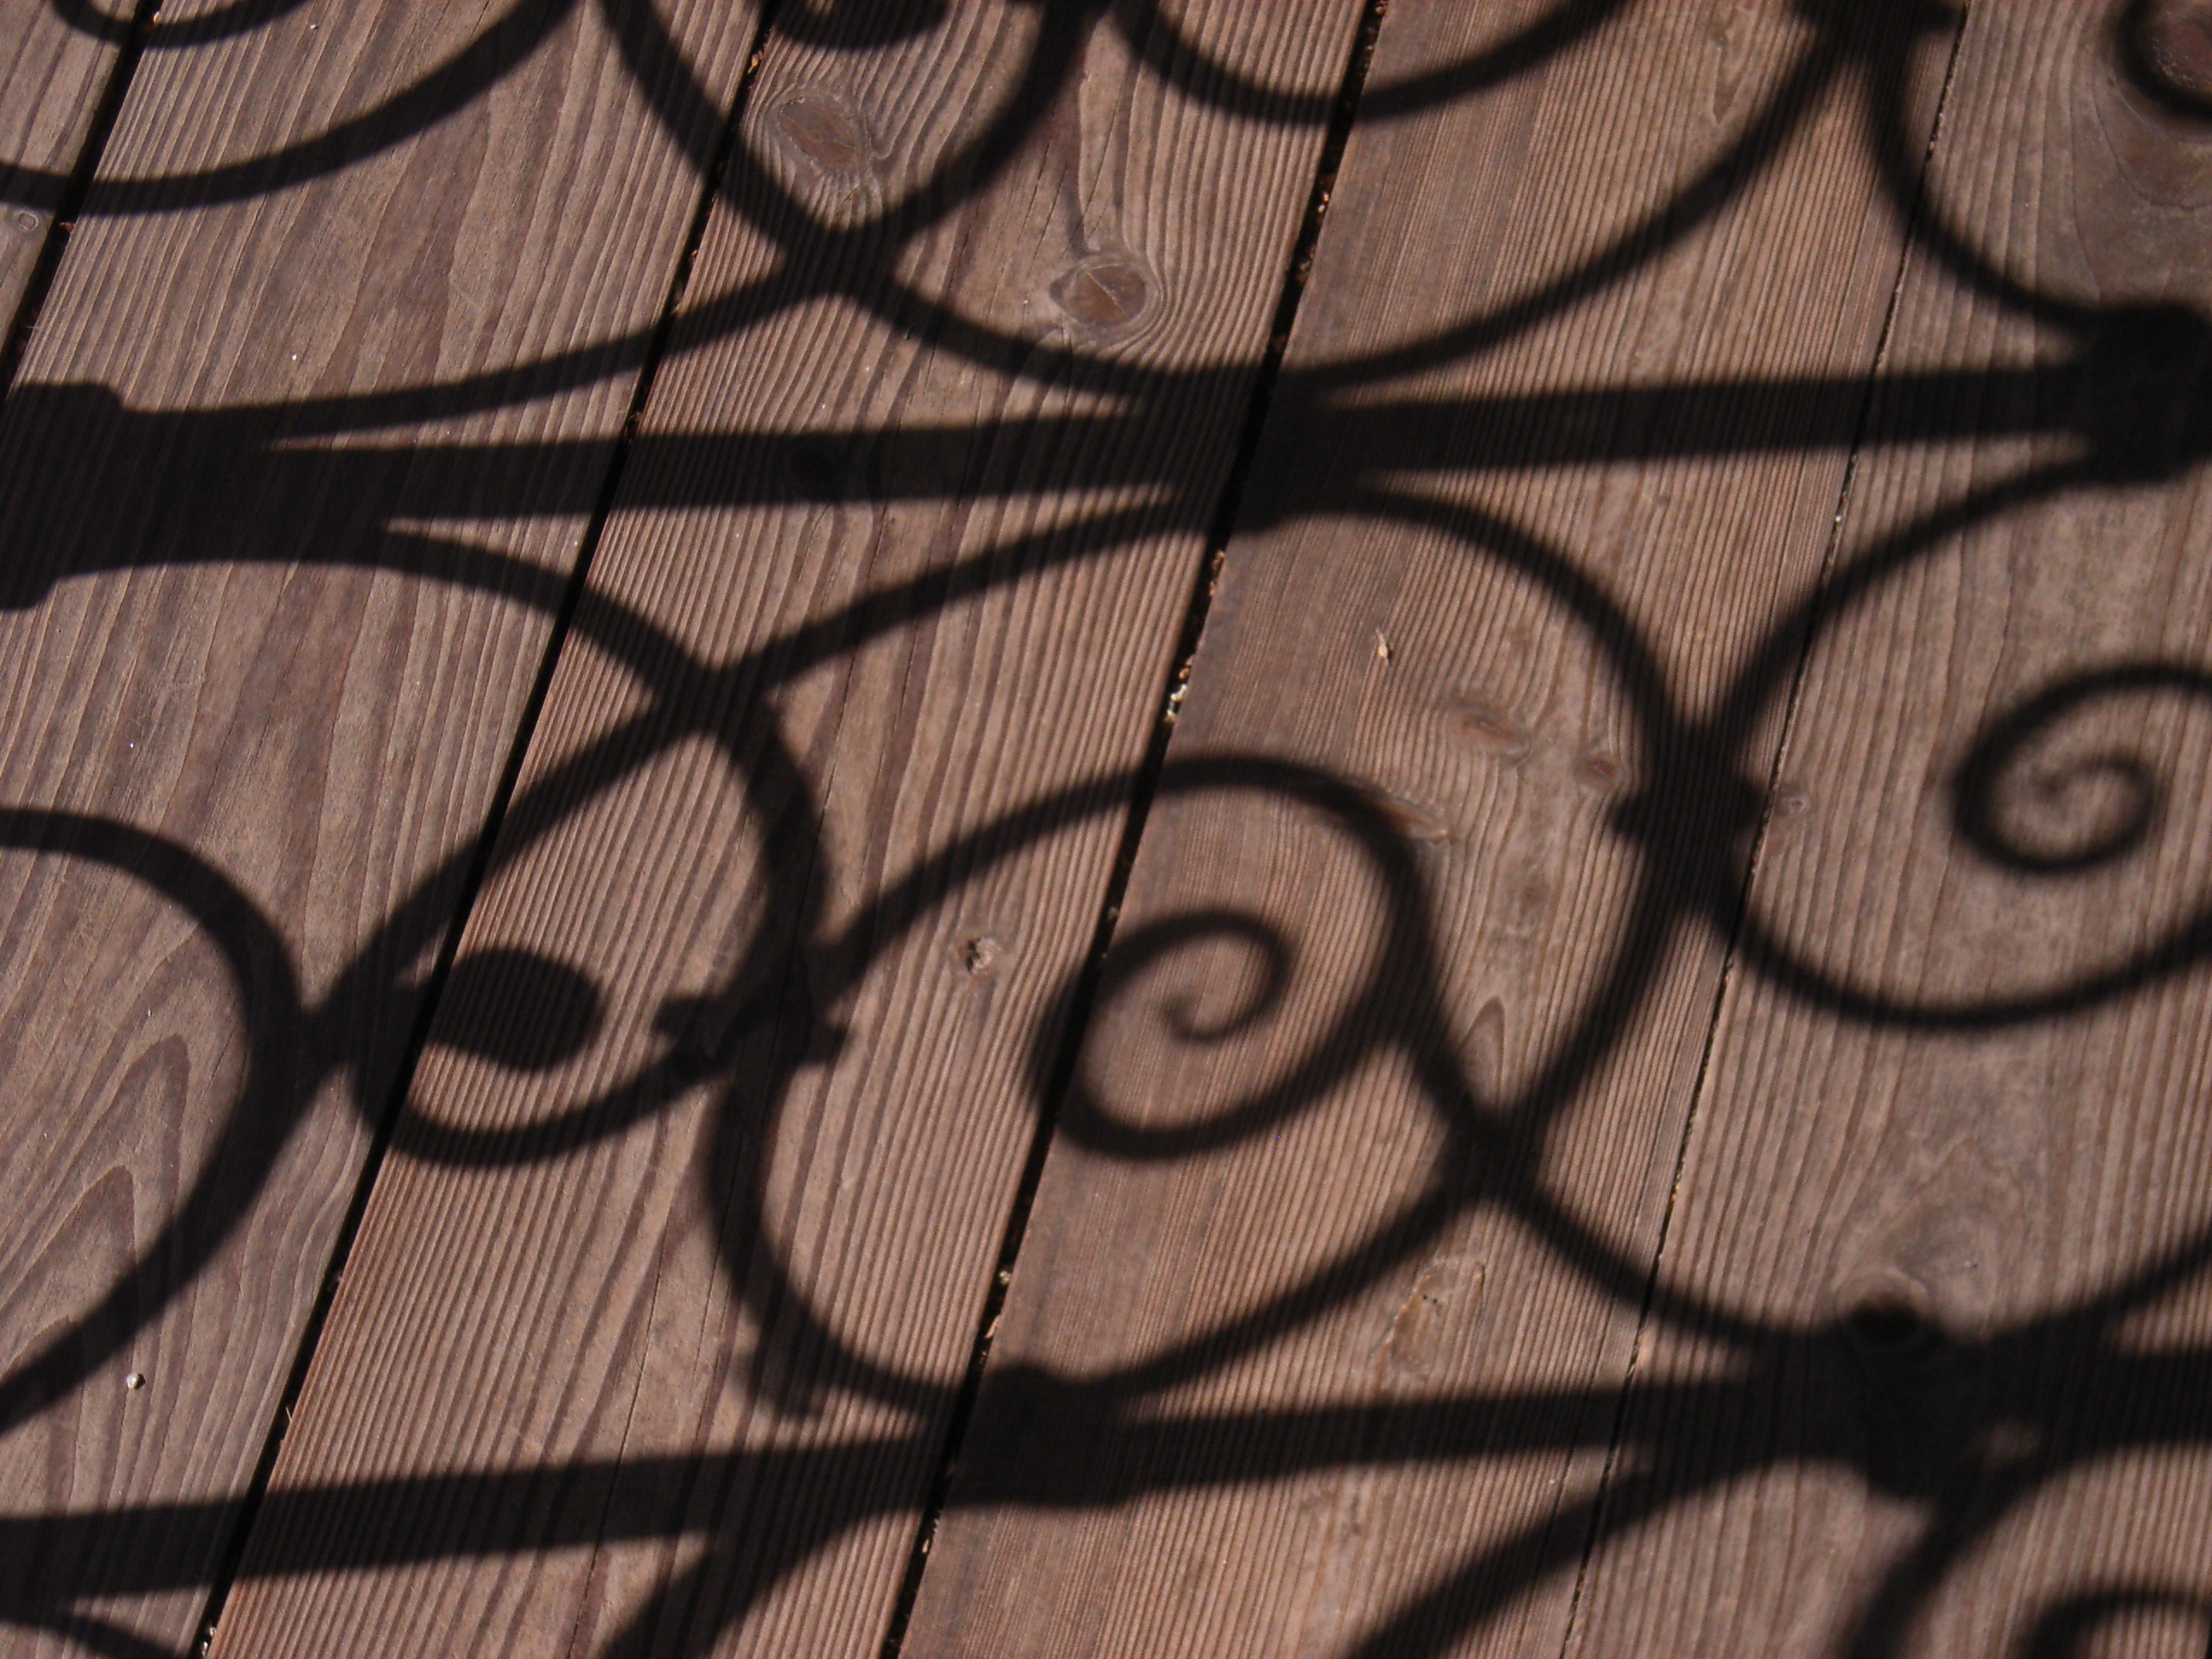 2560x1920 Free Images Light, Architecture, Wood, Texture, Leaf, Spiral